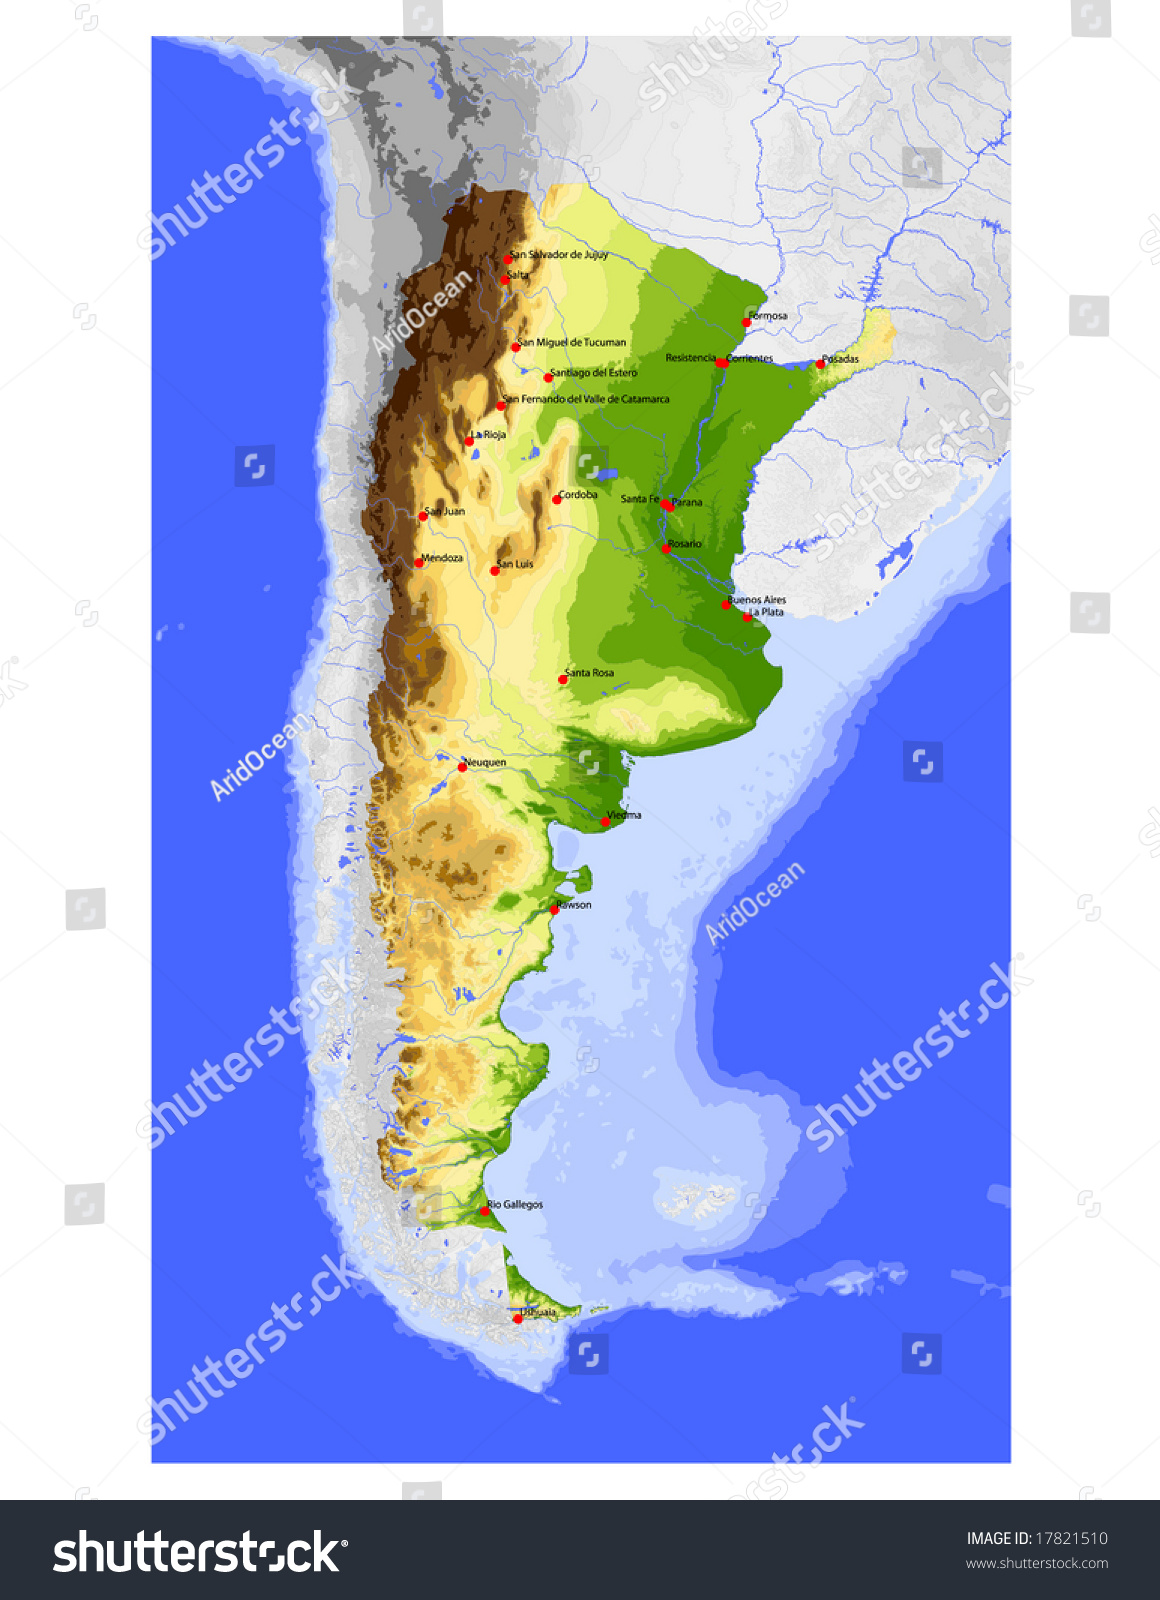 Argentina Physical Vector Map Colored According Stock Vector - Argentina map cities